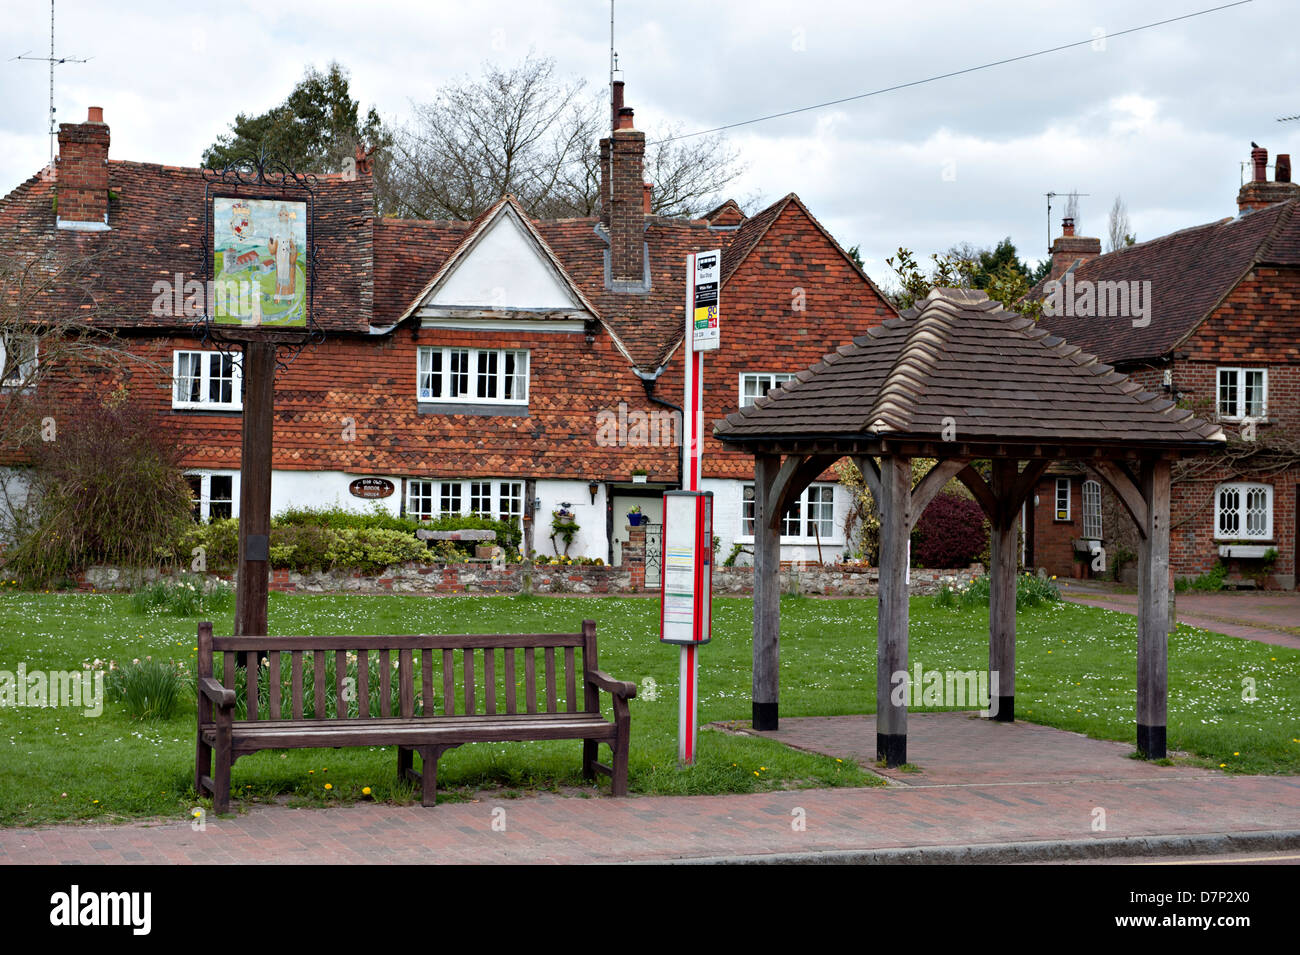 Brasted village bus stop UK - Stock Image